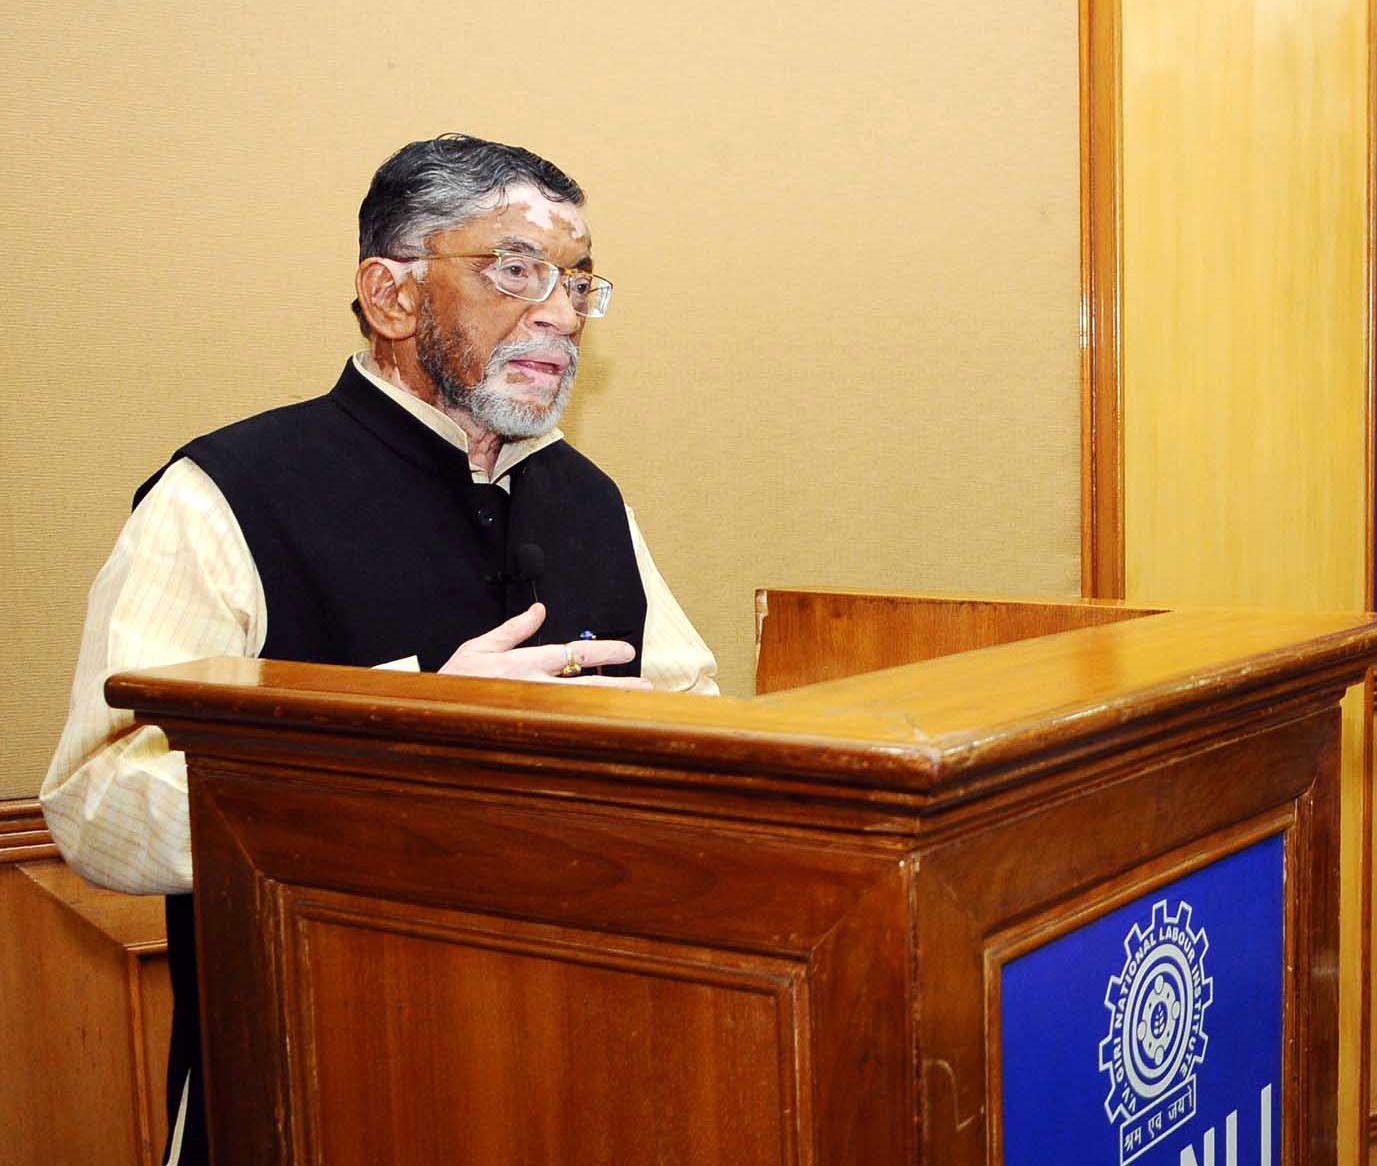 """The Minister of State for Labour and Employment (I/C), Shri Santosh Kumar Gangwar addressing at the inauguration of the renovated Seminar Block and the Brainstorming Session on """"Employment Generation Strategies in India"""", in Noida on November 08, 2017."""